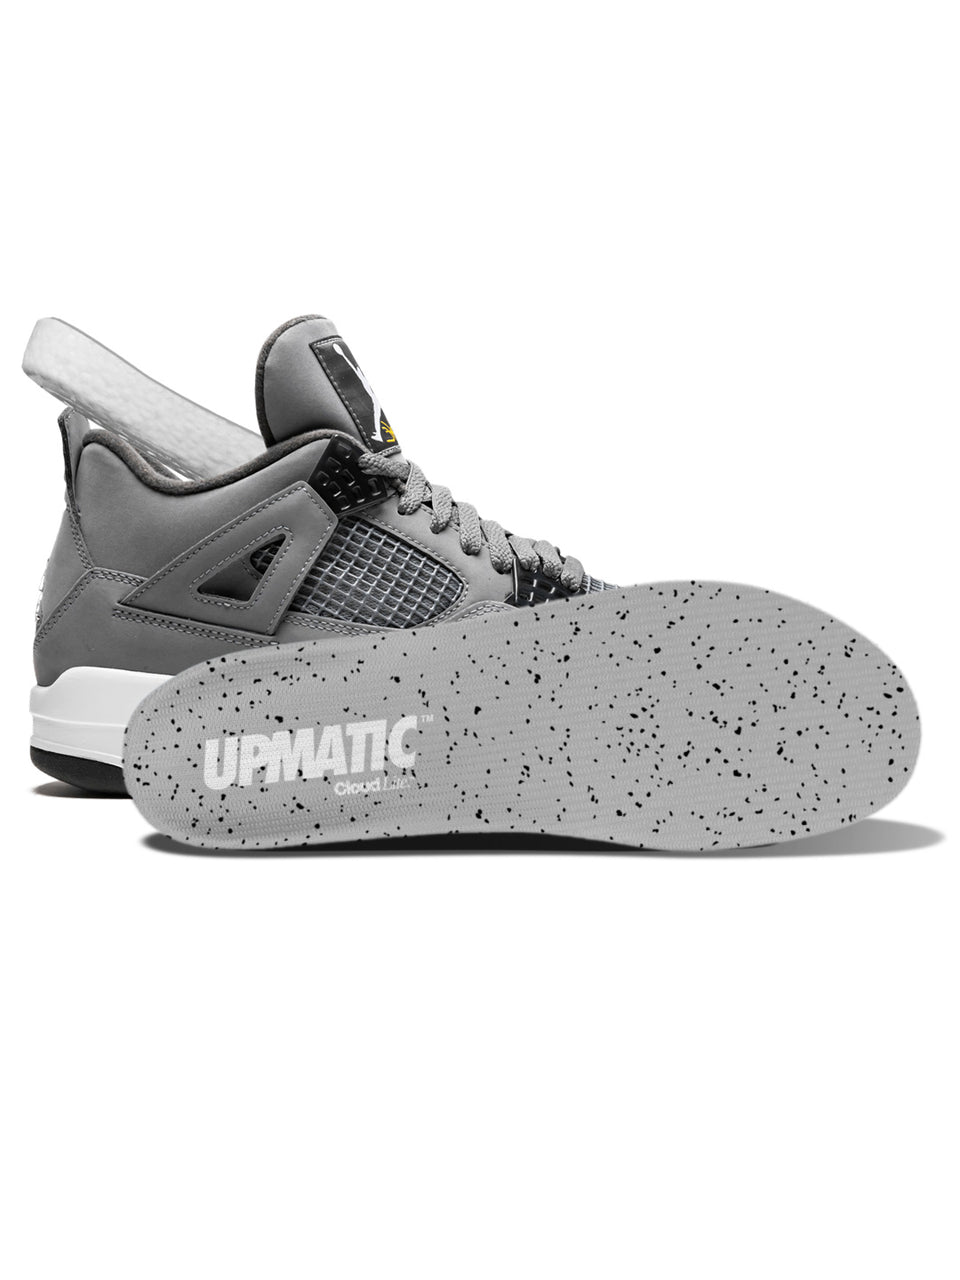 UPMATIC Cloudlite Supercharged Insoles 1989 Black Splatter Limited Edition